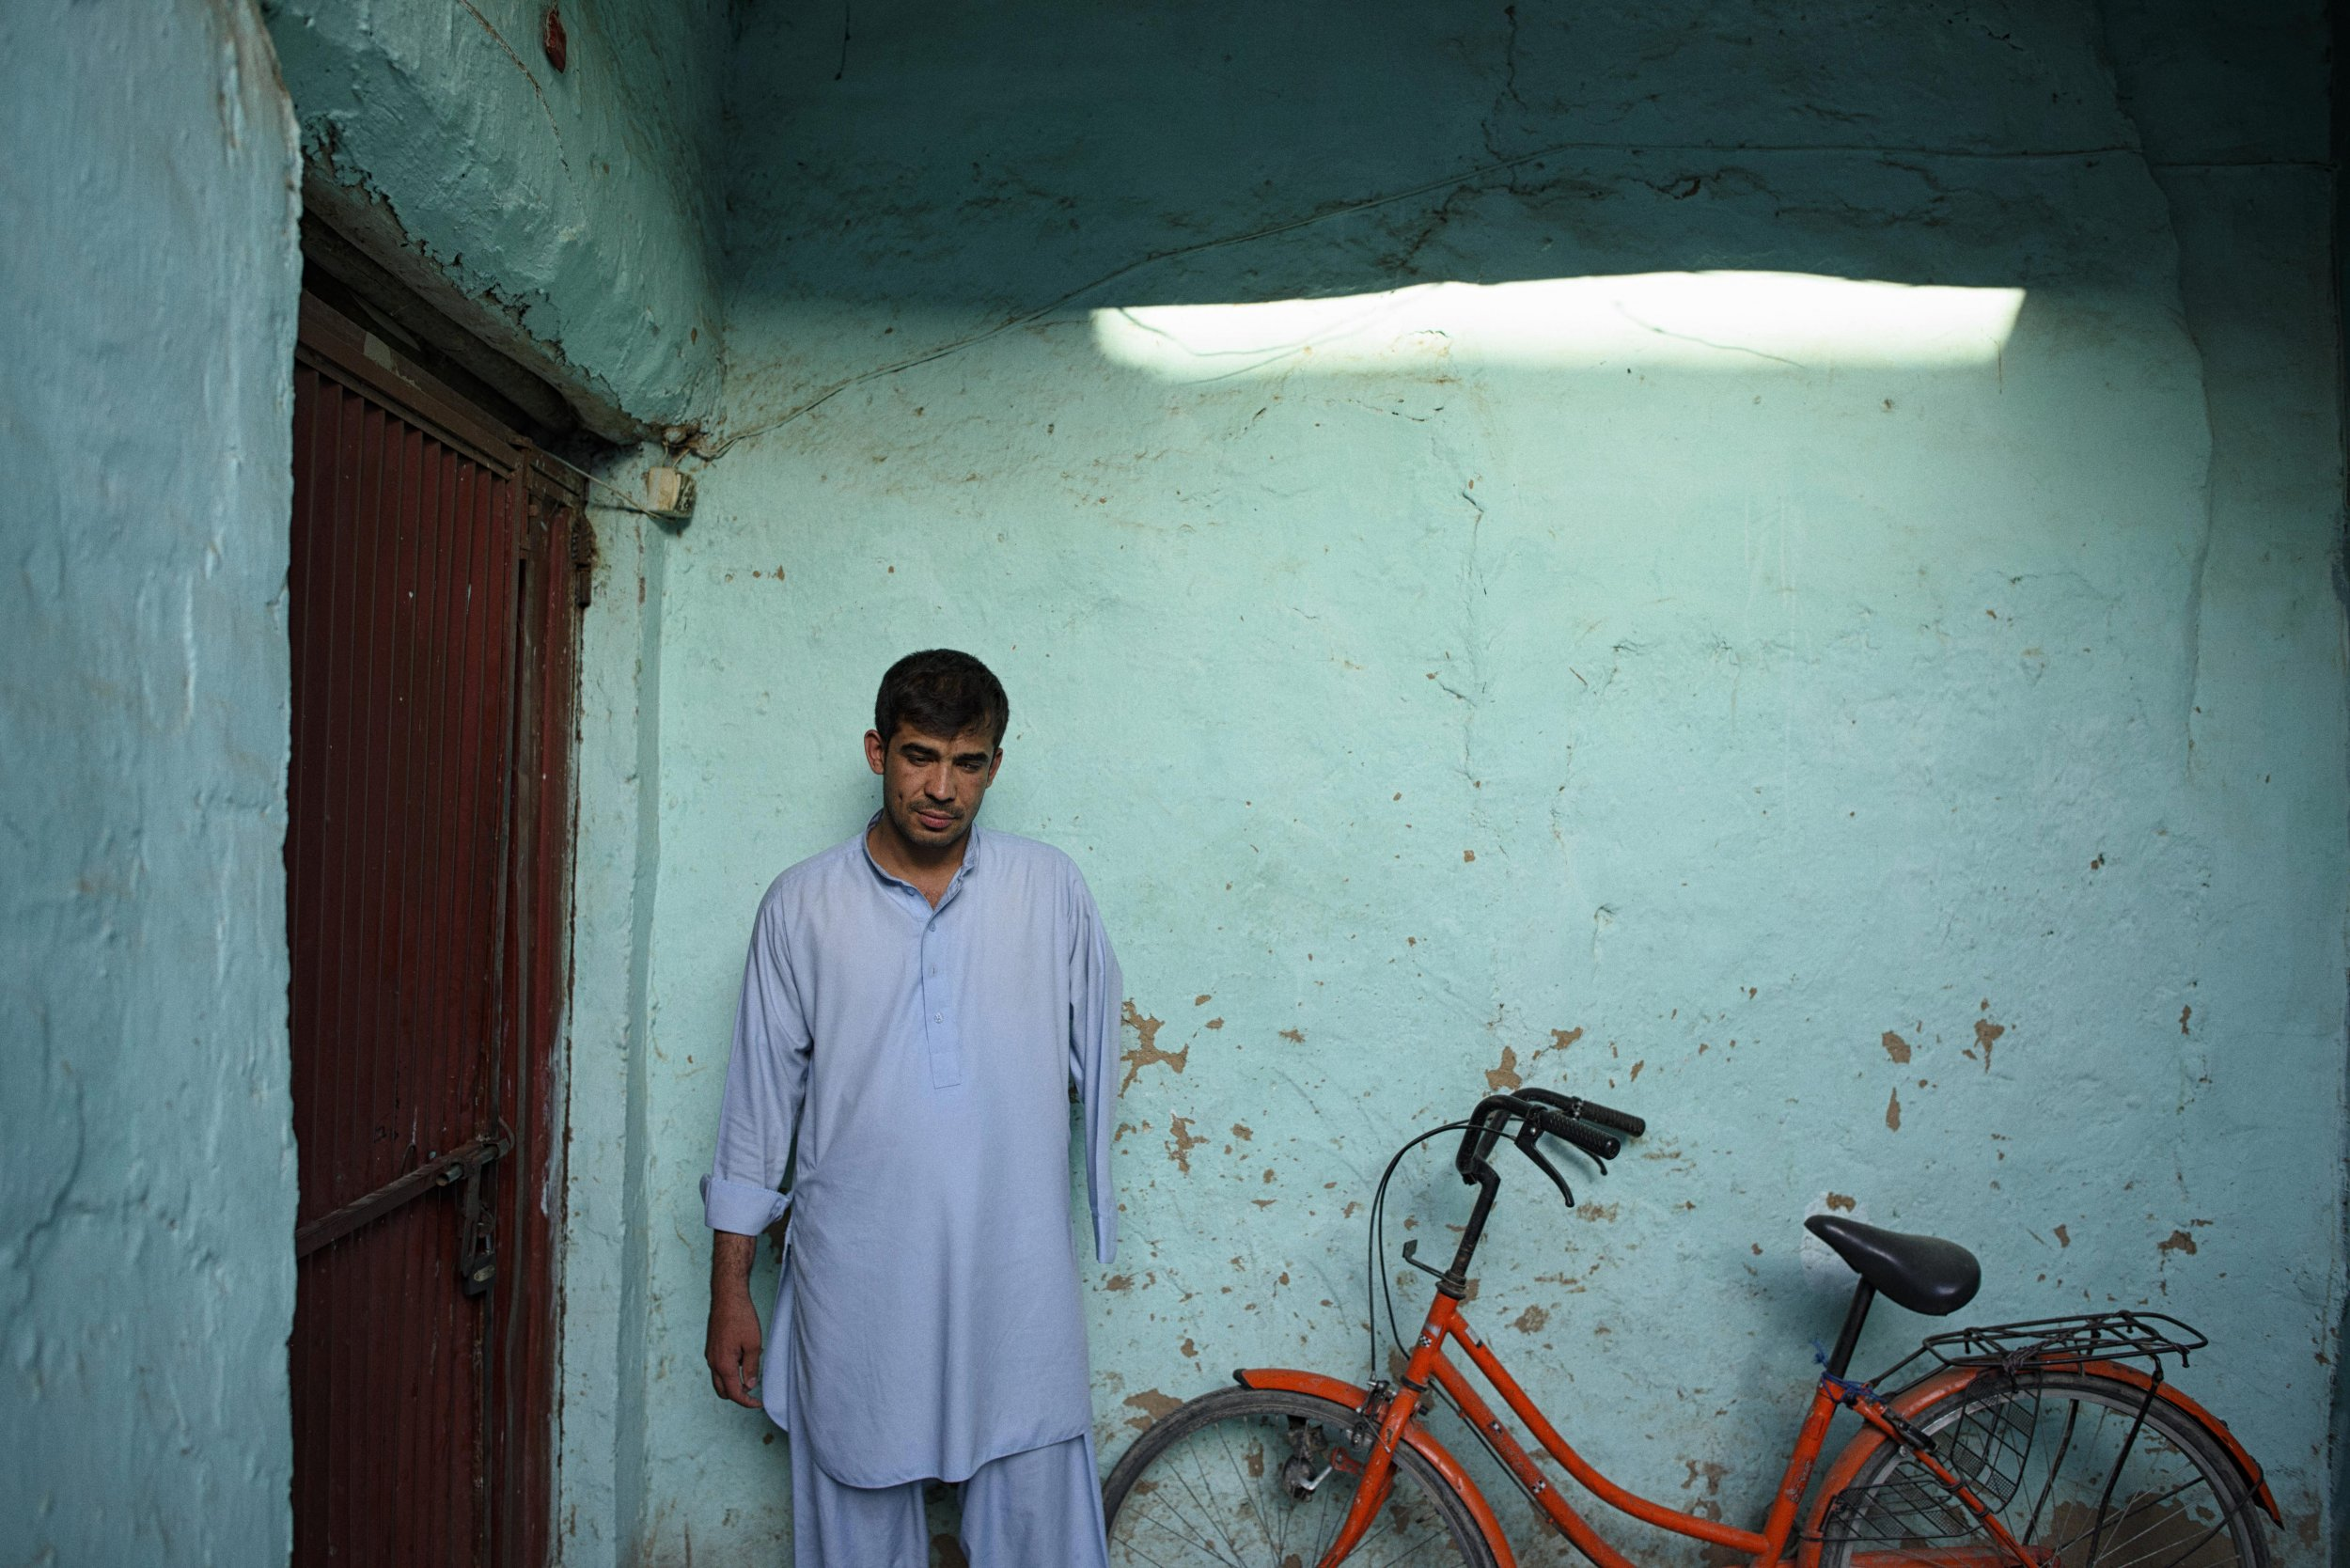 How Much For Your Child? Afghan Condolence Payments Draw Scrutiny